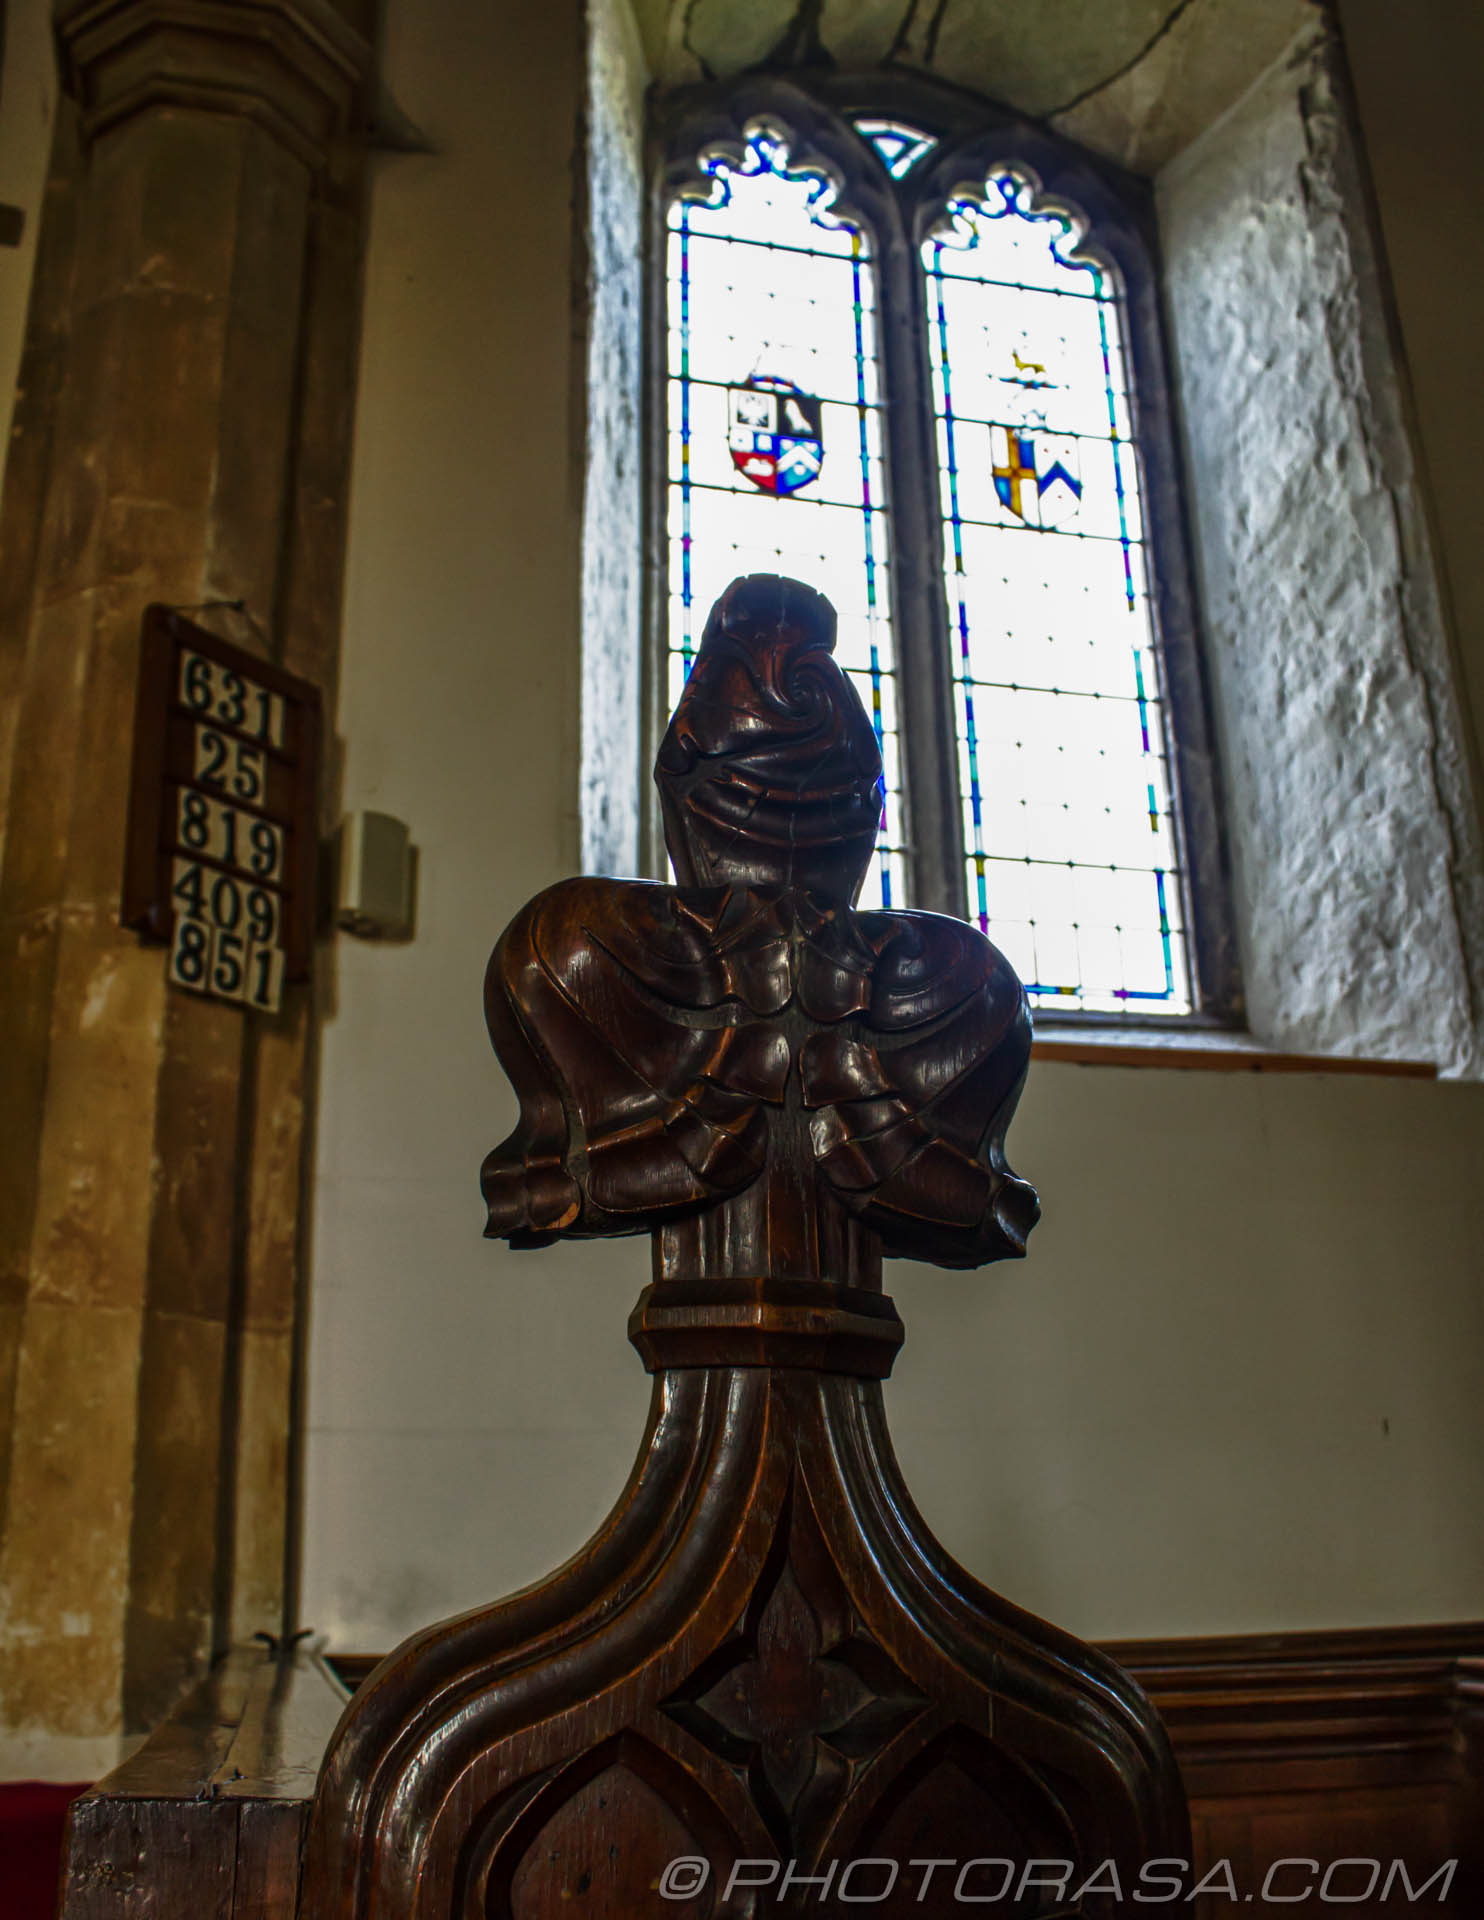 http://photorasa.com/saints-church-staplehurst-kent/pew-decoration-and-window/